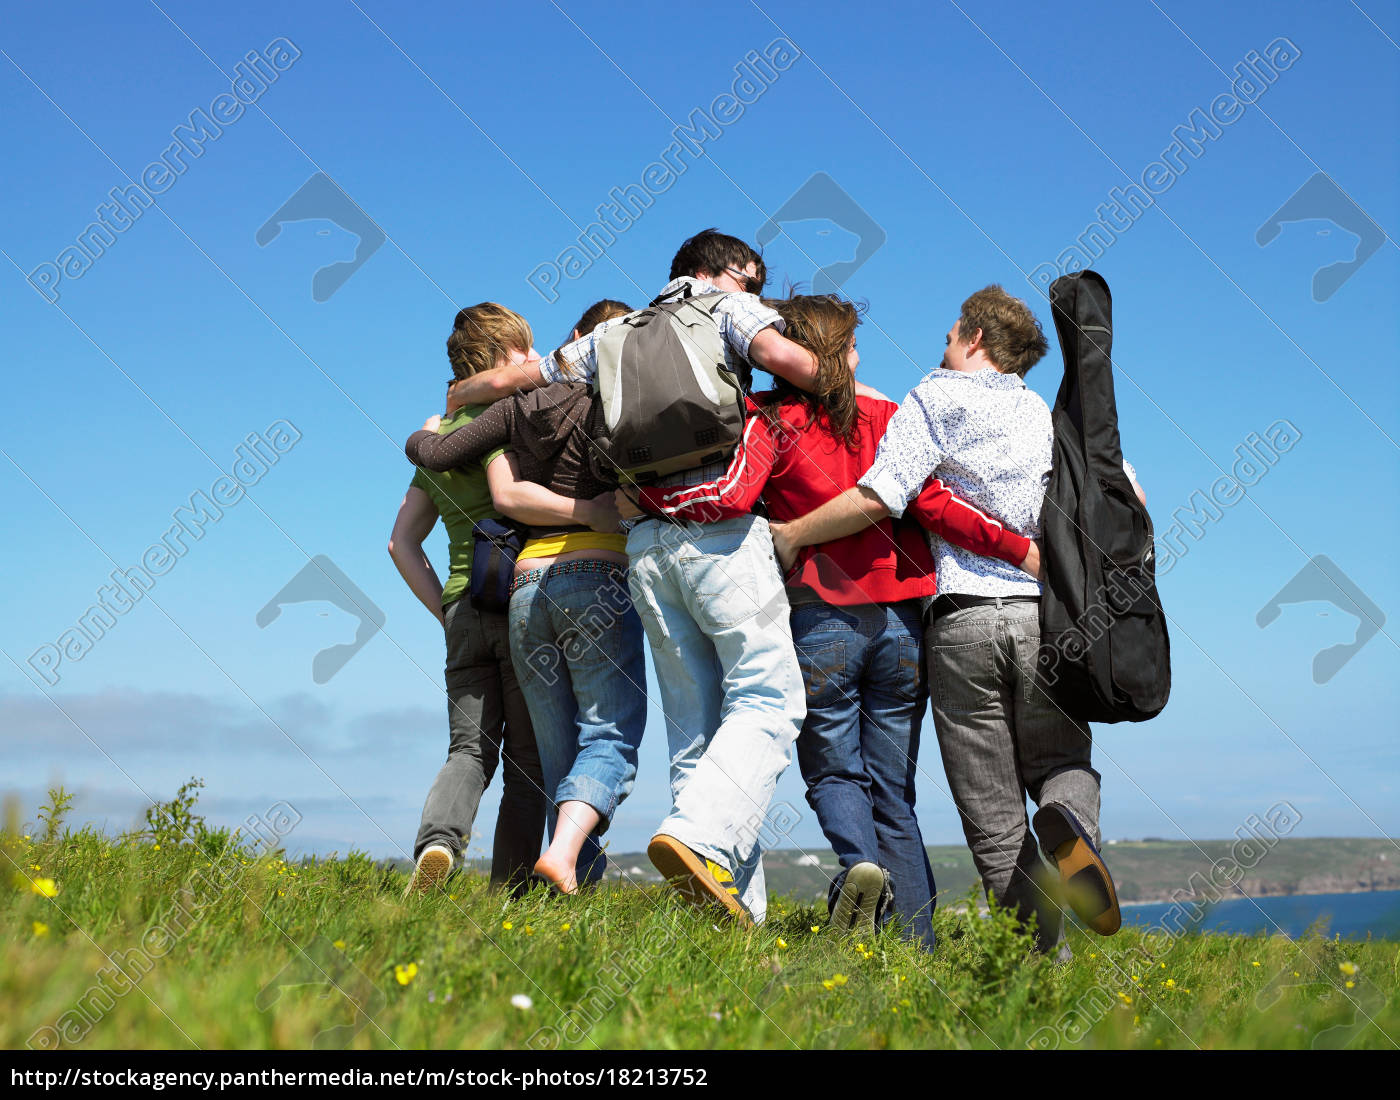 group, of, young, people, outdoors. - 18213752